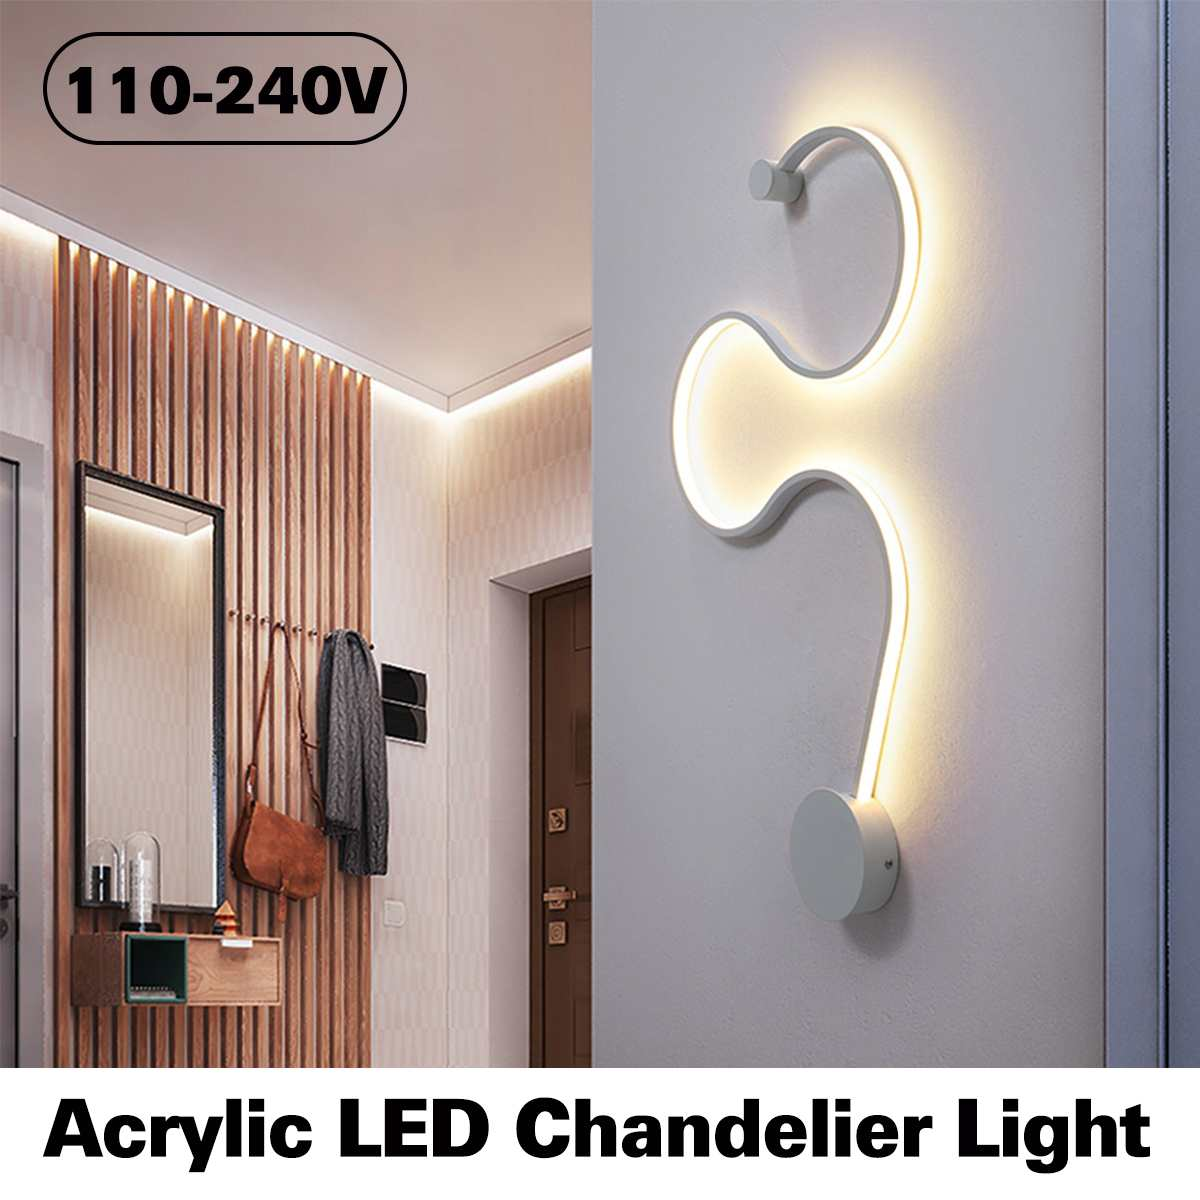 Modern Design Bending Acrylic LED Lamp Chandelier Light For Living Room Bedroom Indoor Ceiling Corridor Aisle Background LightsModern Design Bending Acrylic LED Lamp Chandelier Light For Living Room Bedroom Indoor Ceiling Corridor Aisle Background Lights